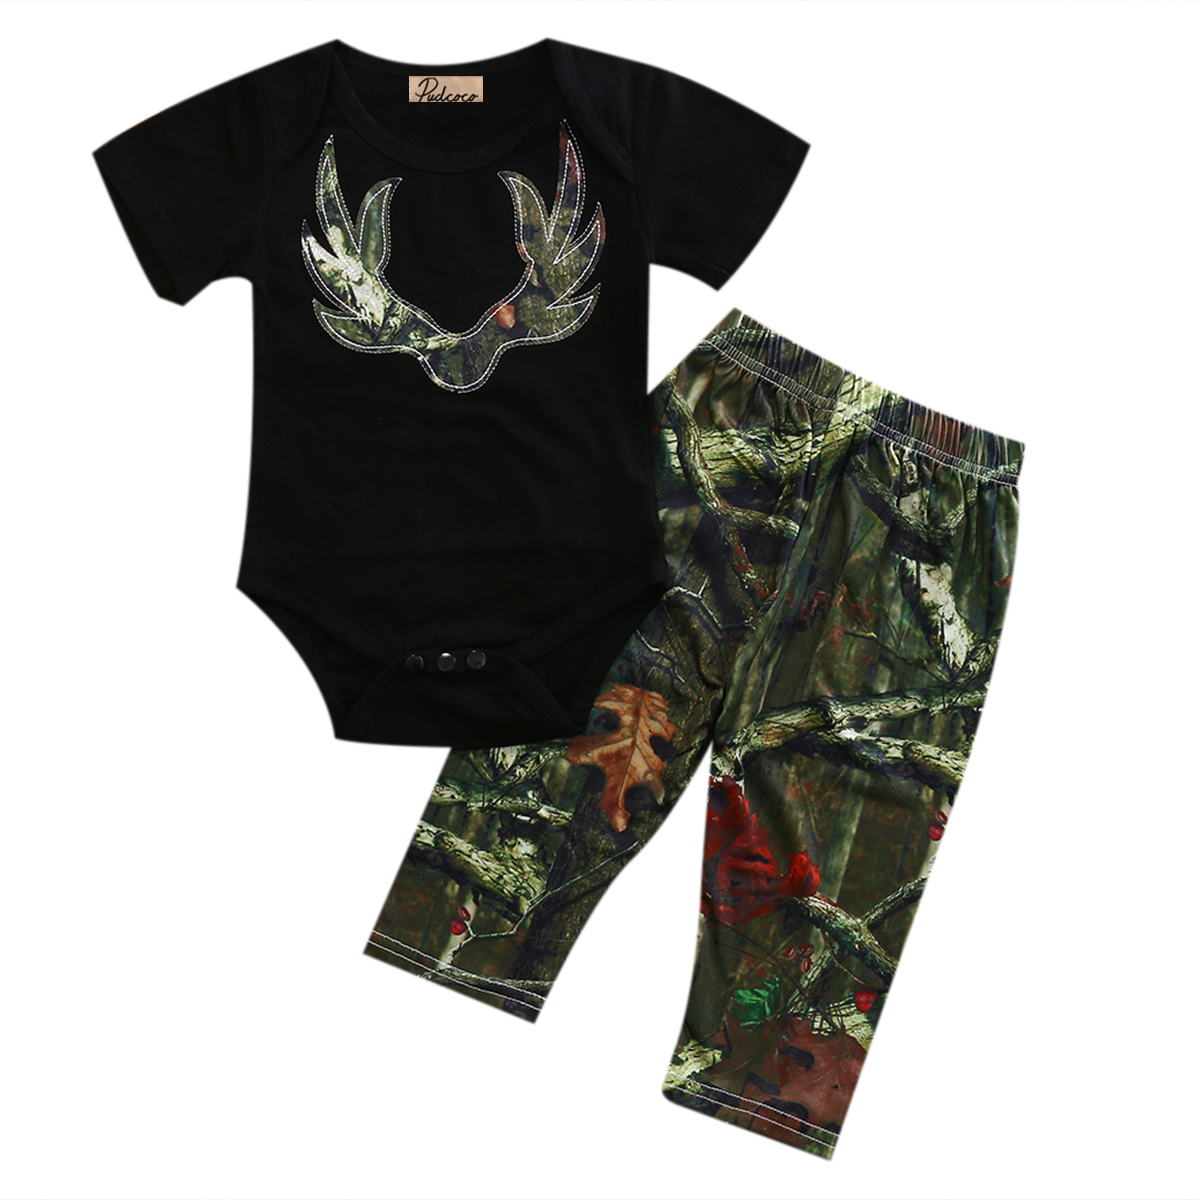 0-3Y Cotton Newborn Baby Cute Boys Girls Short Sleeve Tops O-Neck Romper +Pants Outfits Clothes Set 0-3T